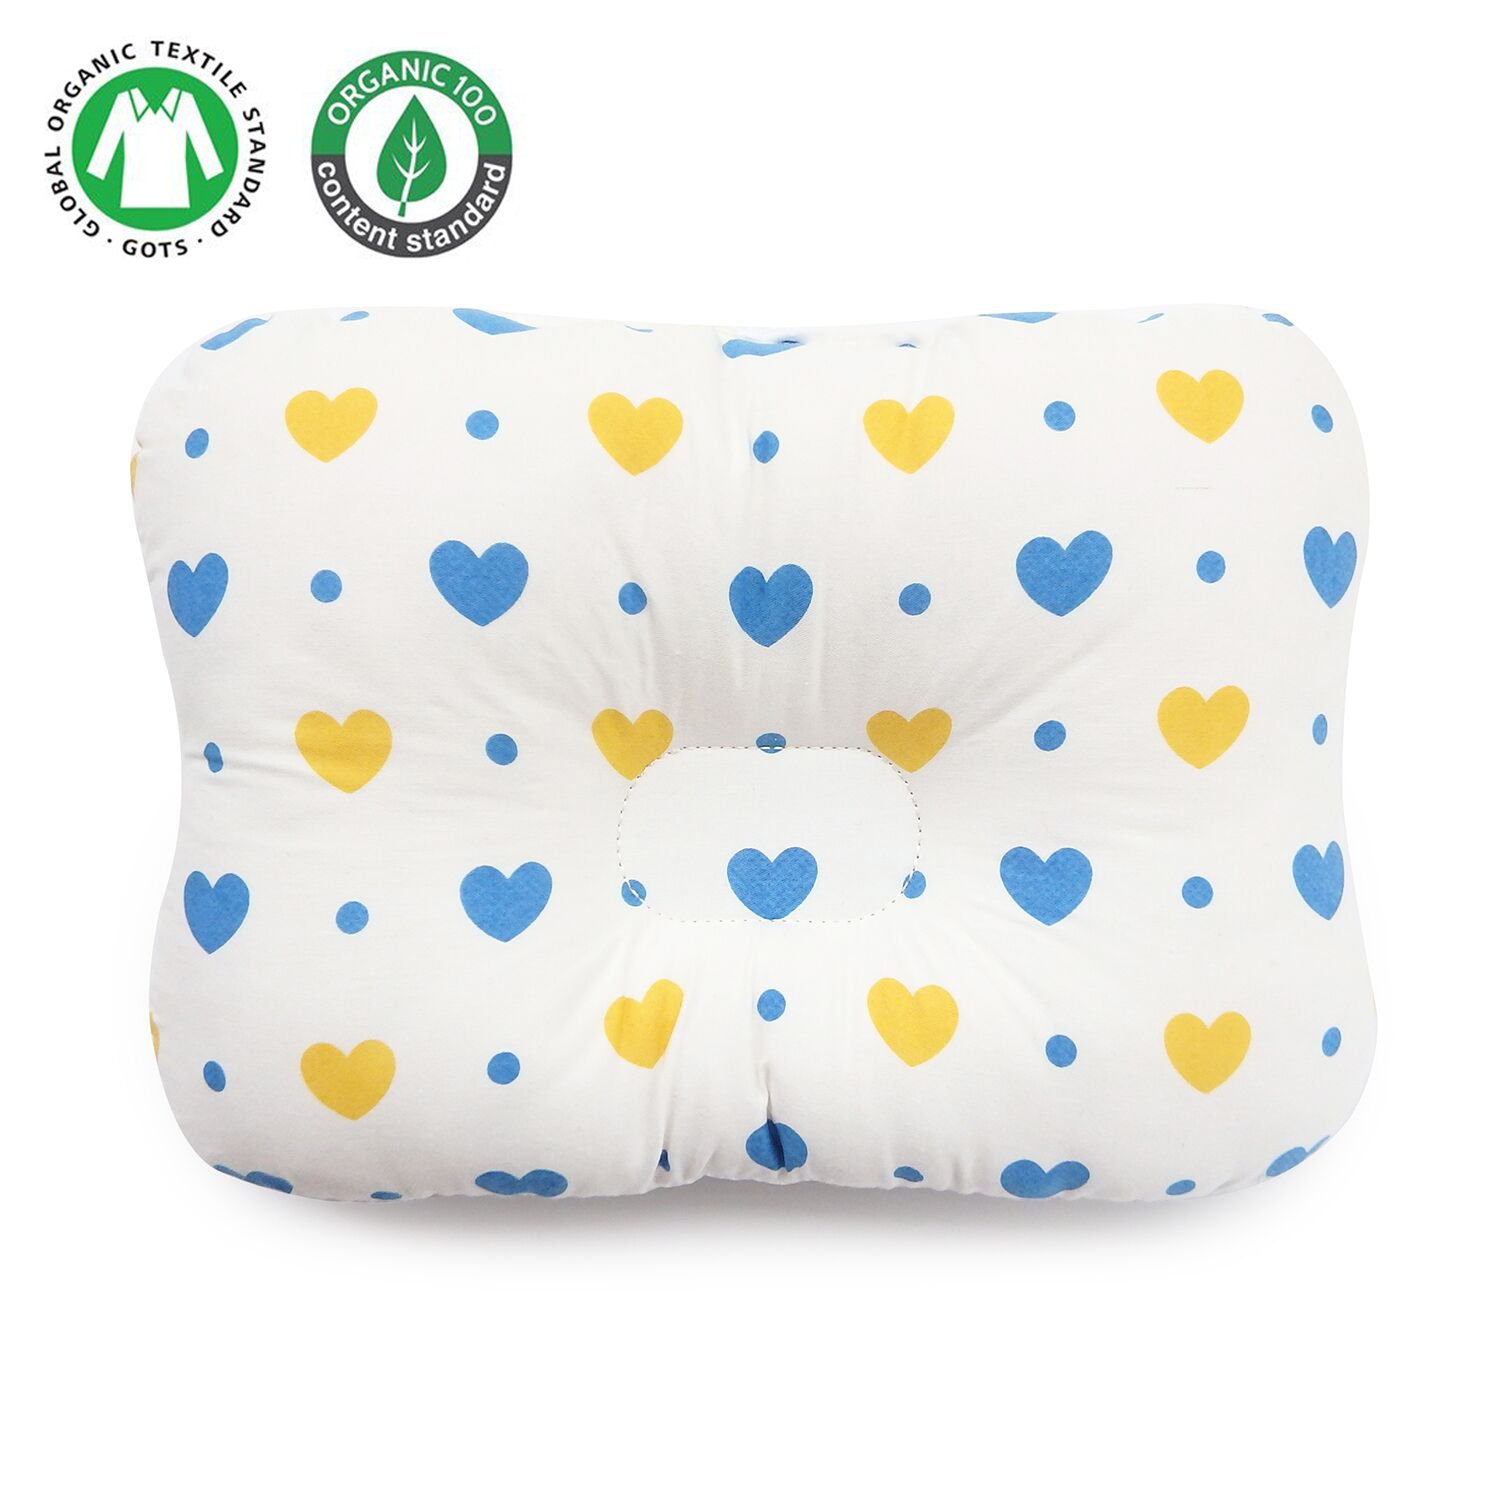 Baby Pillow - Unisex for Newborn & Infant - Cotton Flat Head Baby Pillow makes baby's head round - Protect Plagiocephaly (Flat Head Syndrome) 10LOVE JJZZD02